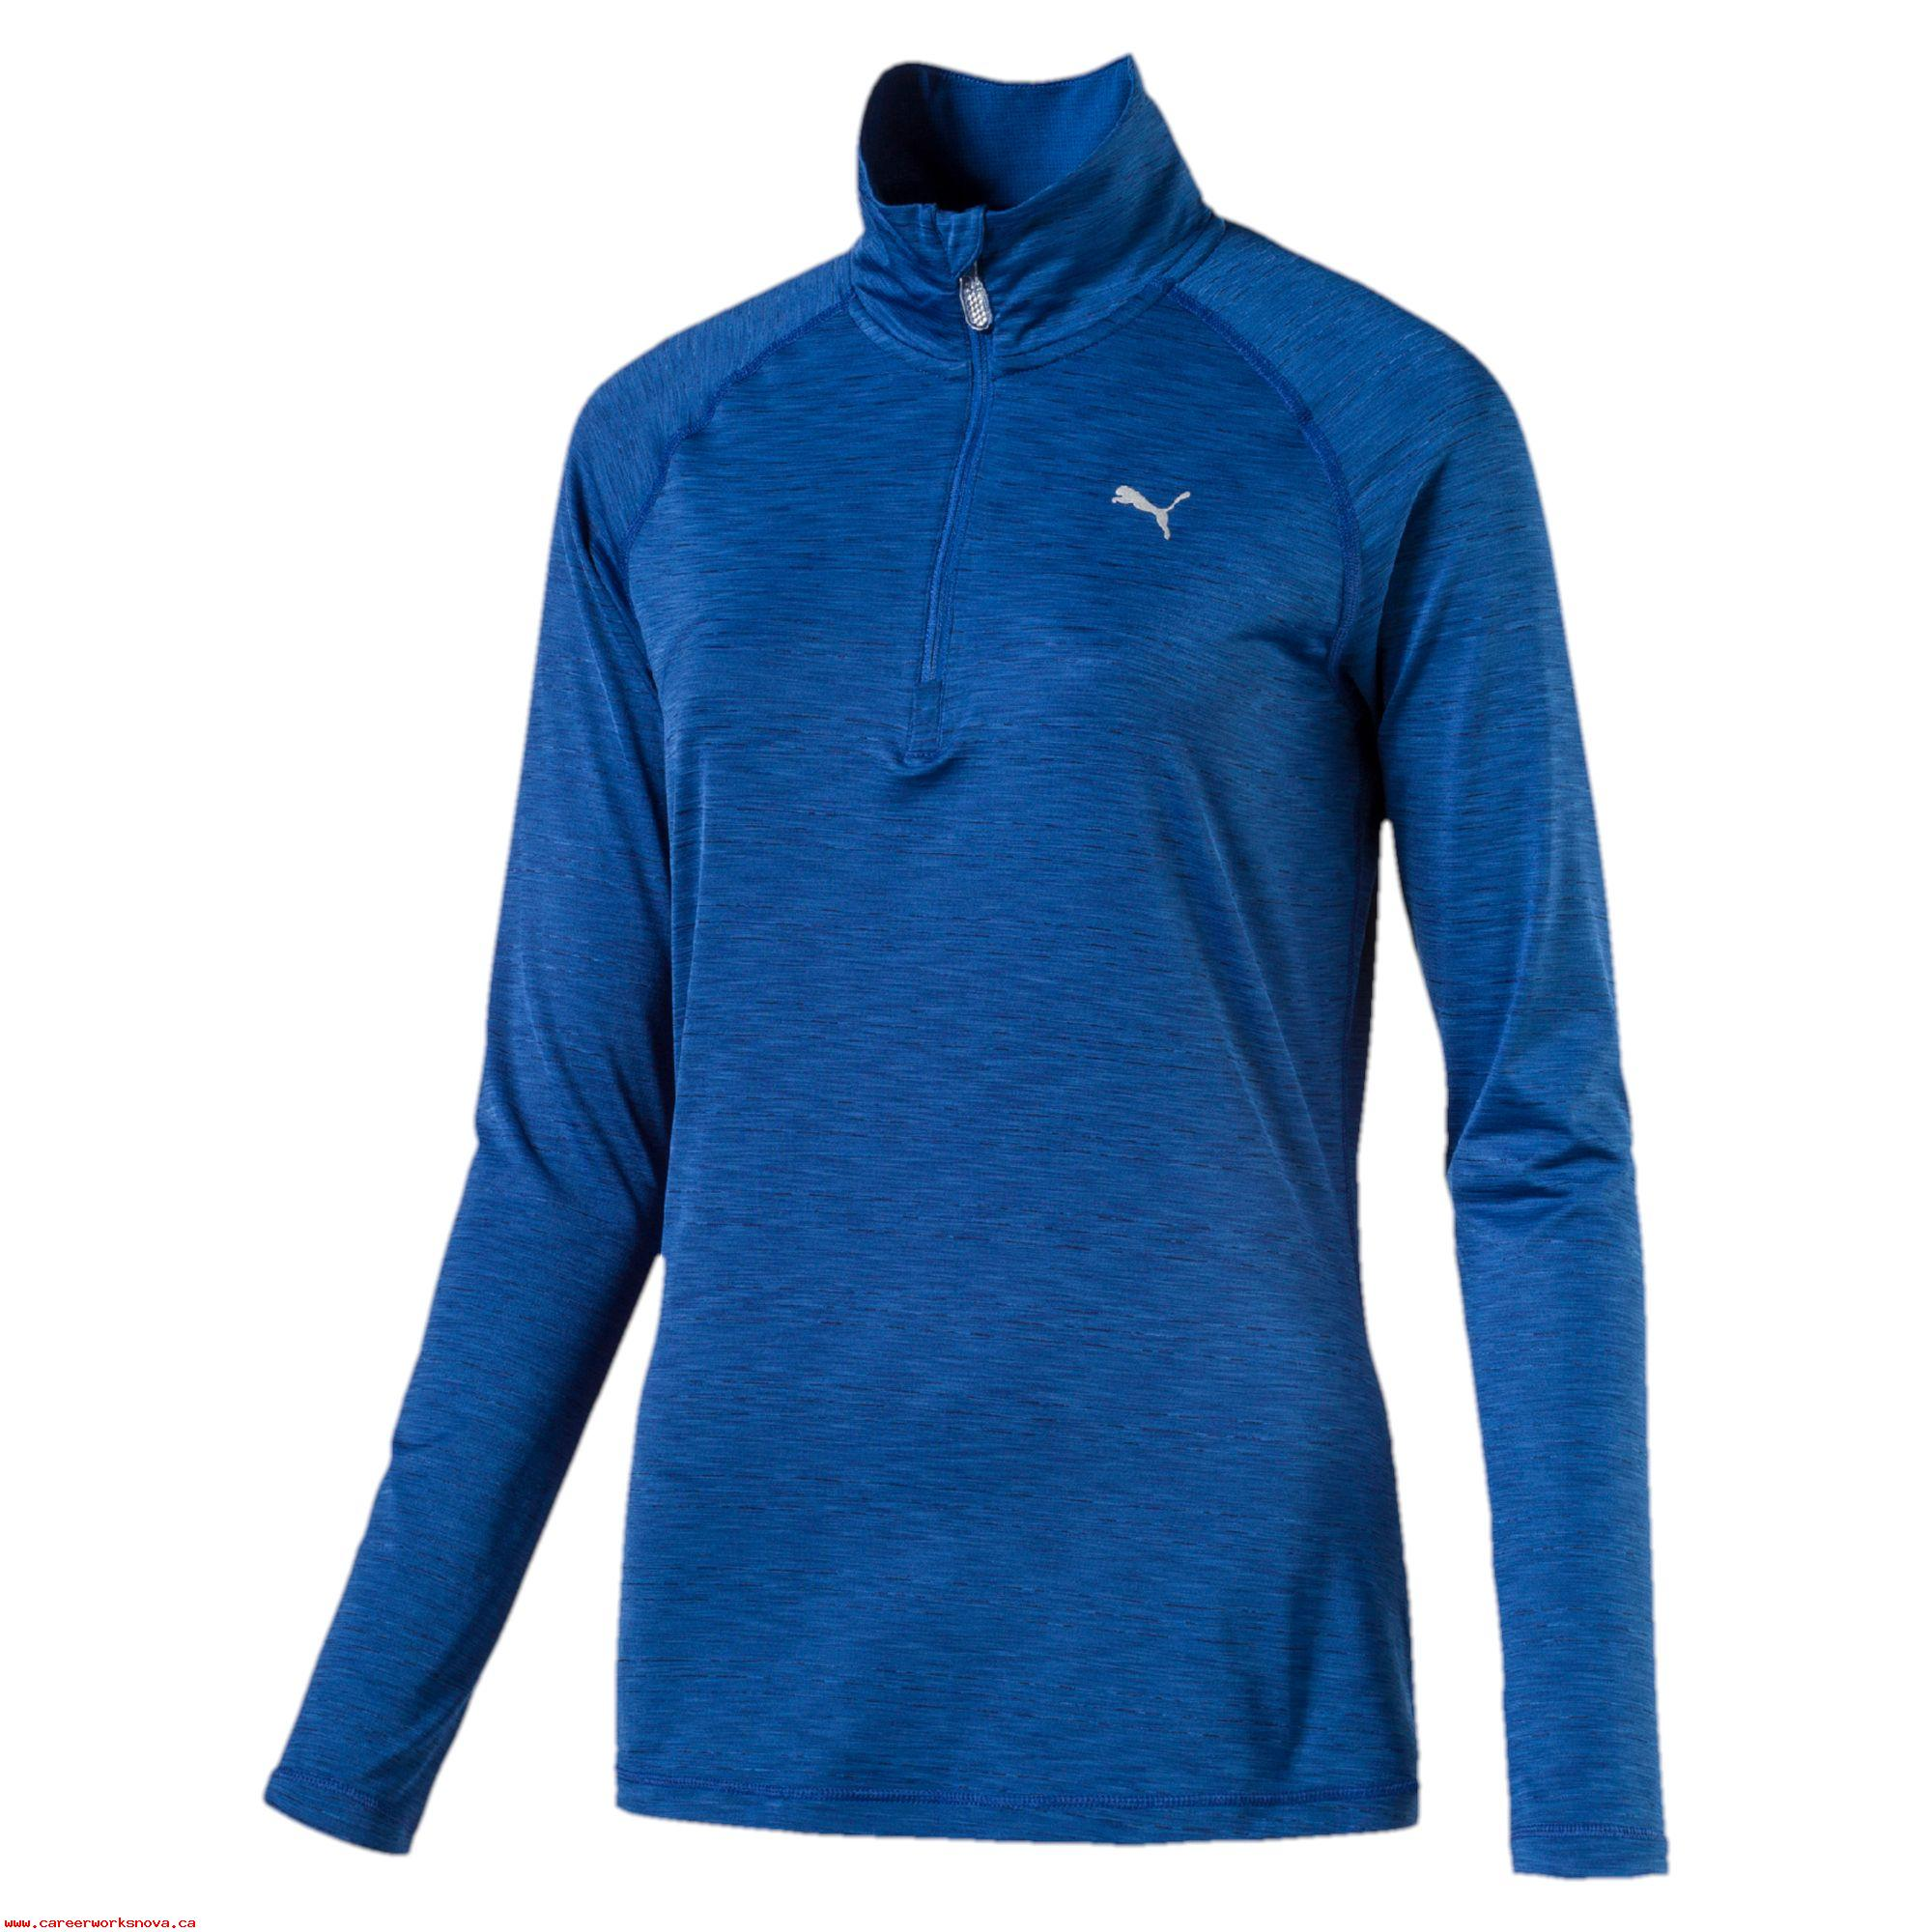 Core-Run L S HZ Top W Blue Depths Heathe